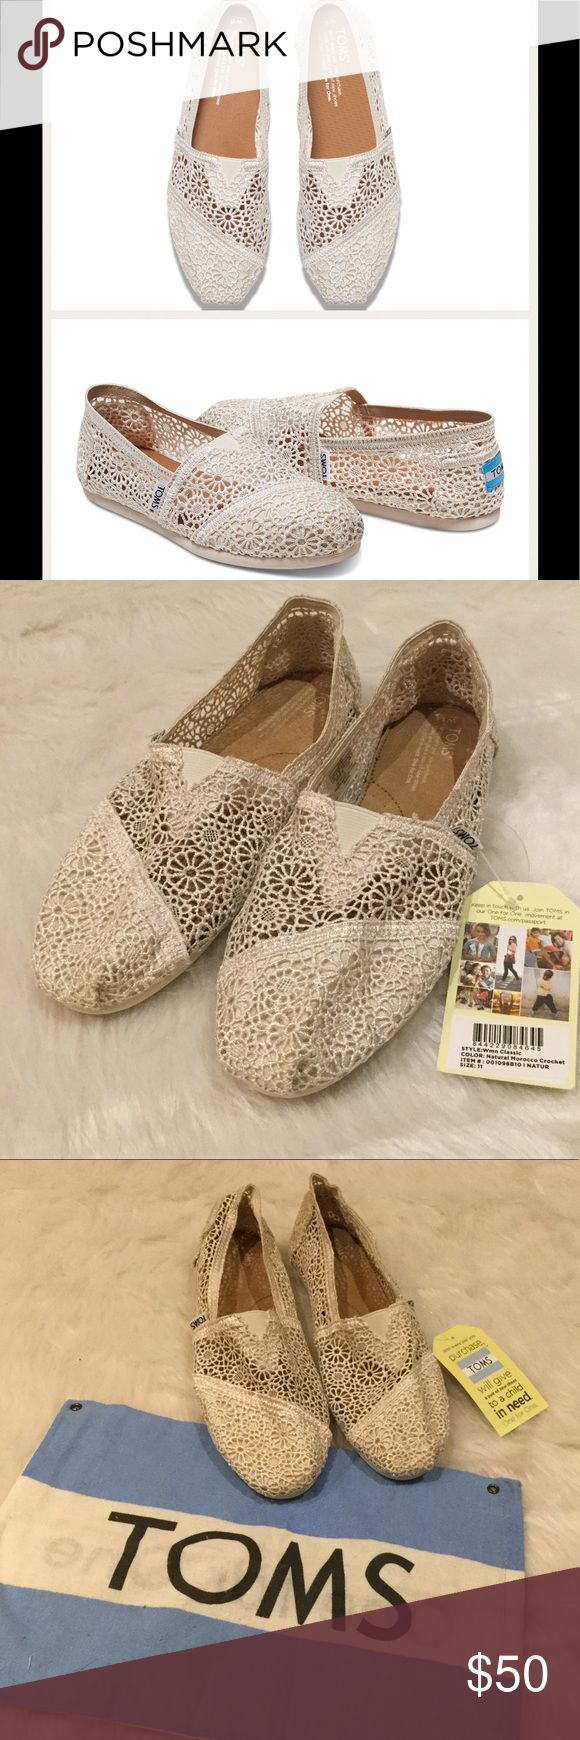 NWT TOMS Natural Moroccan Crochet Classics Stay light on your feet in these Classics!  Featuring a crocheted upper and more cushioning than ever.  Crocheted upper with TOMS toe-stitch.  Elastic gore for easy fit.  True to size.  NWT but do not have box.  Does come with TOMS garment bag. TOMS Shoes Flats & Loafers